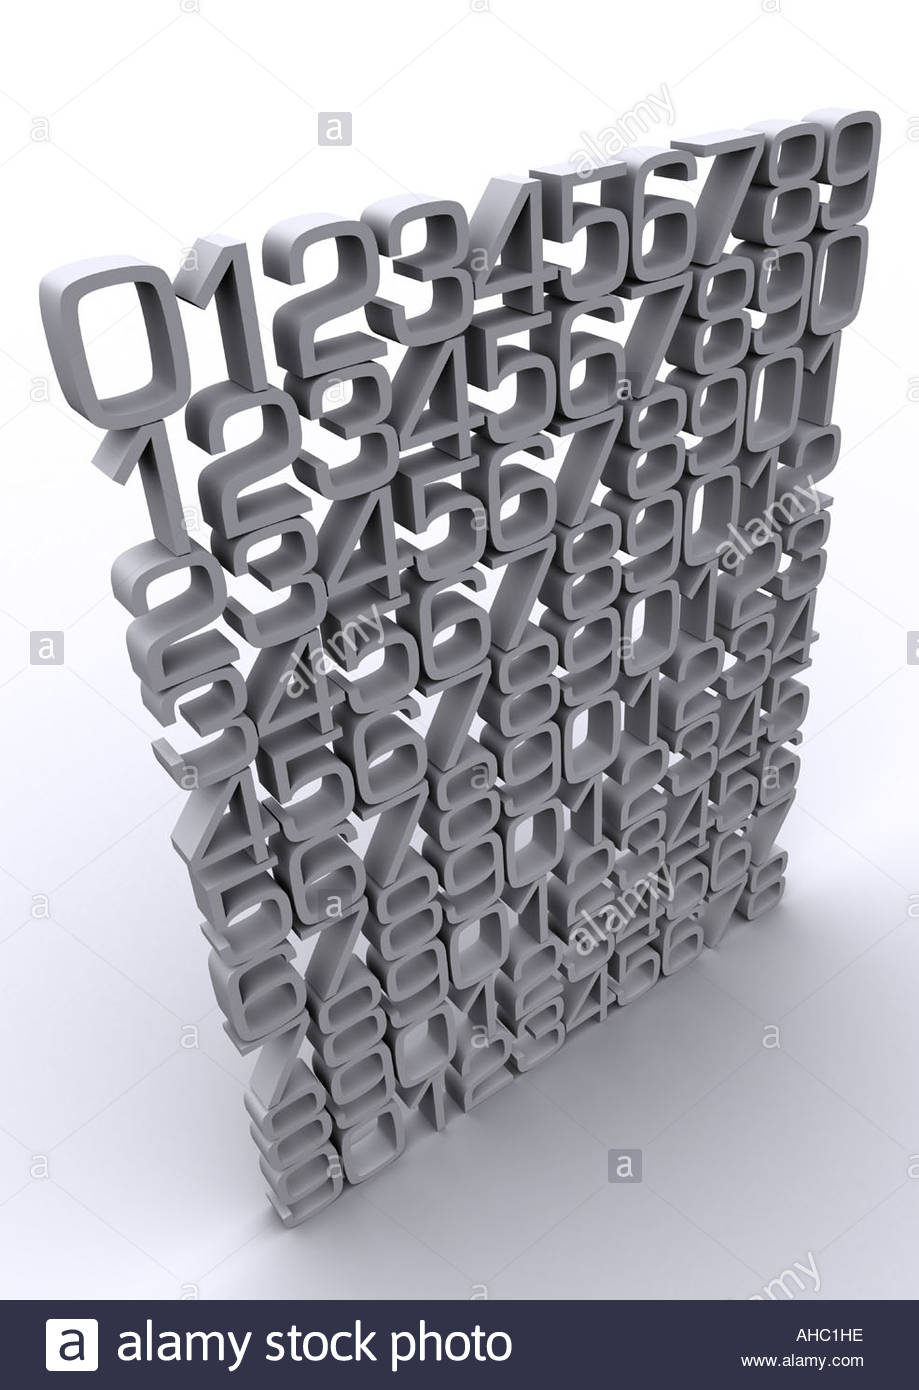 Typography 3D numerals - Stock Image